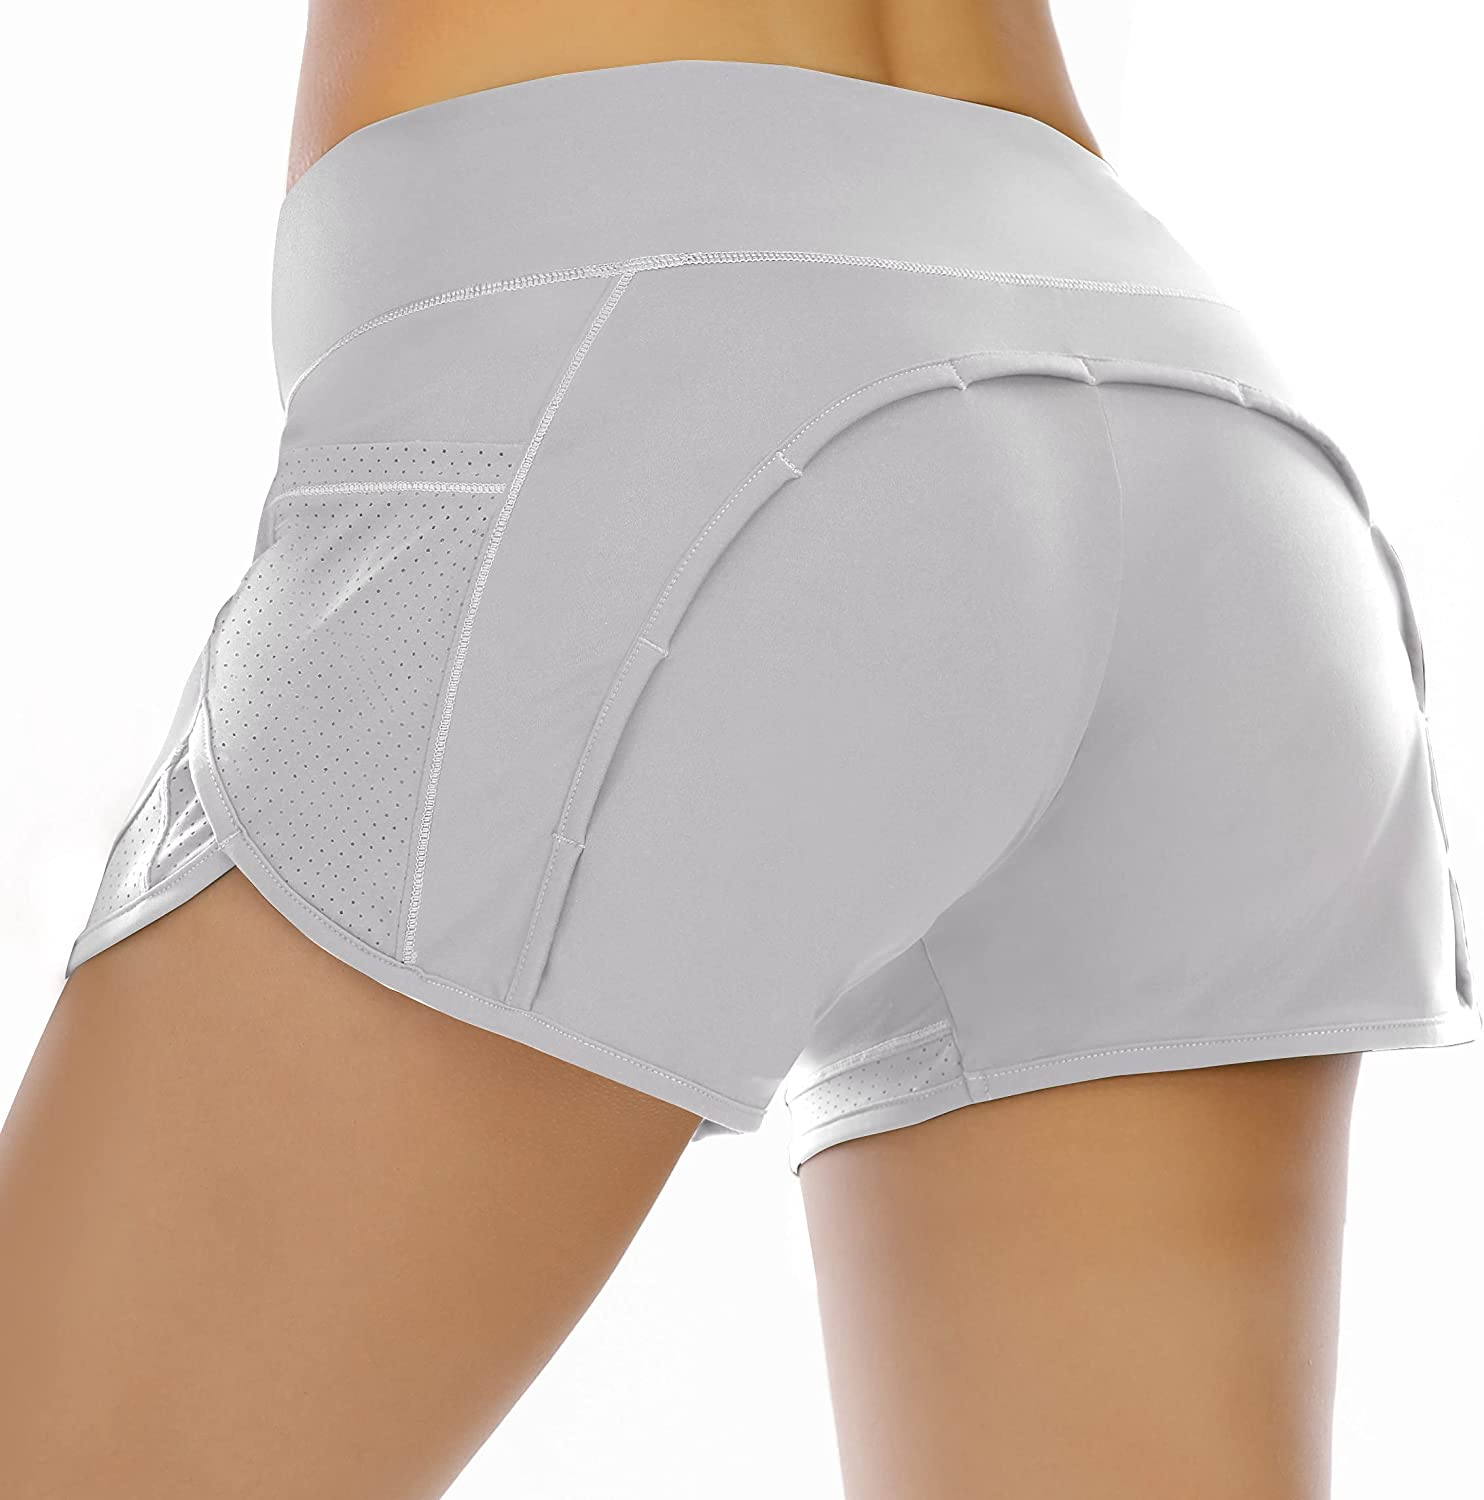 Heathyoga Quick Dry Running Shorts for Large-scale sale Workout Popular shop is the lowest price challenge with Women